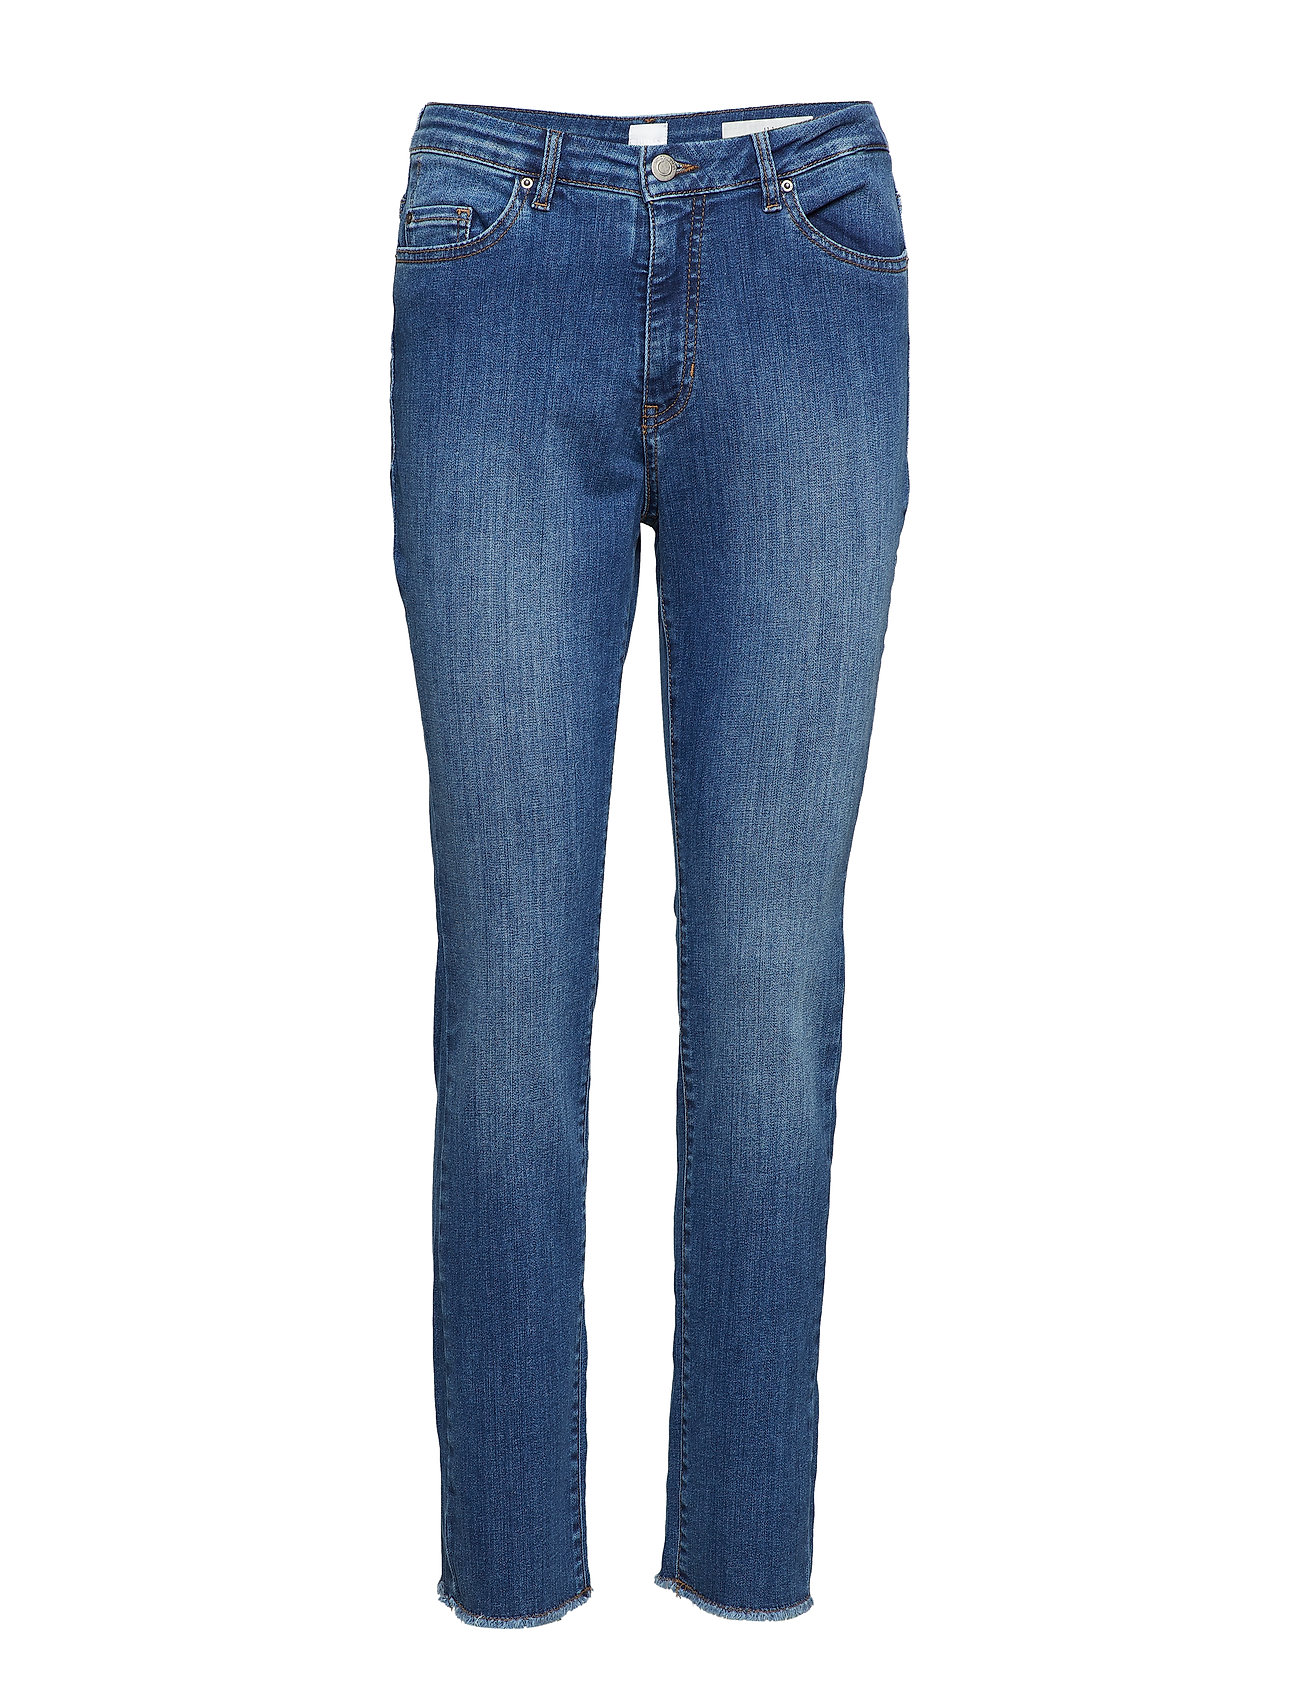 Boss Casual Wear J11 Murietta - BRIGHT BLUE